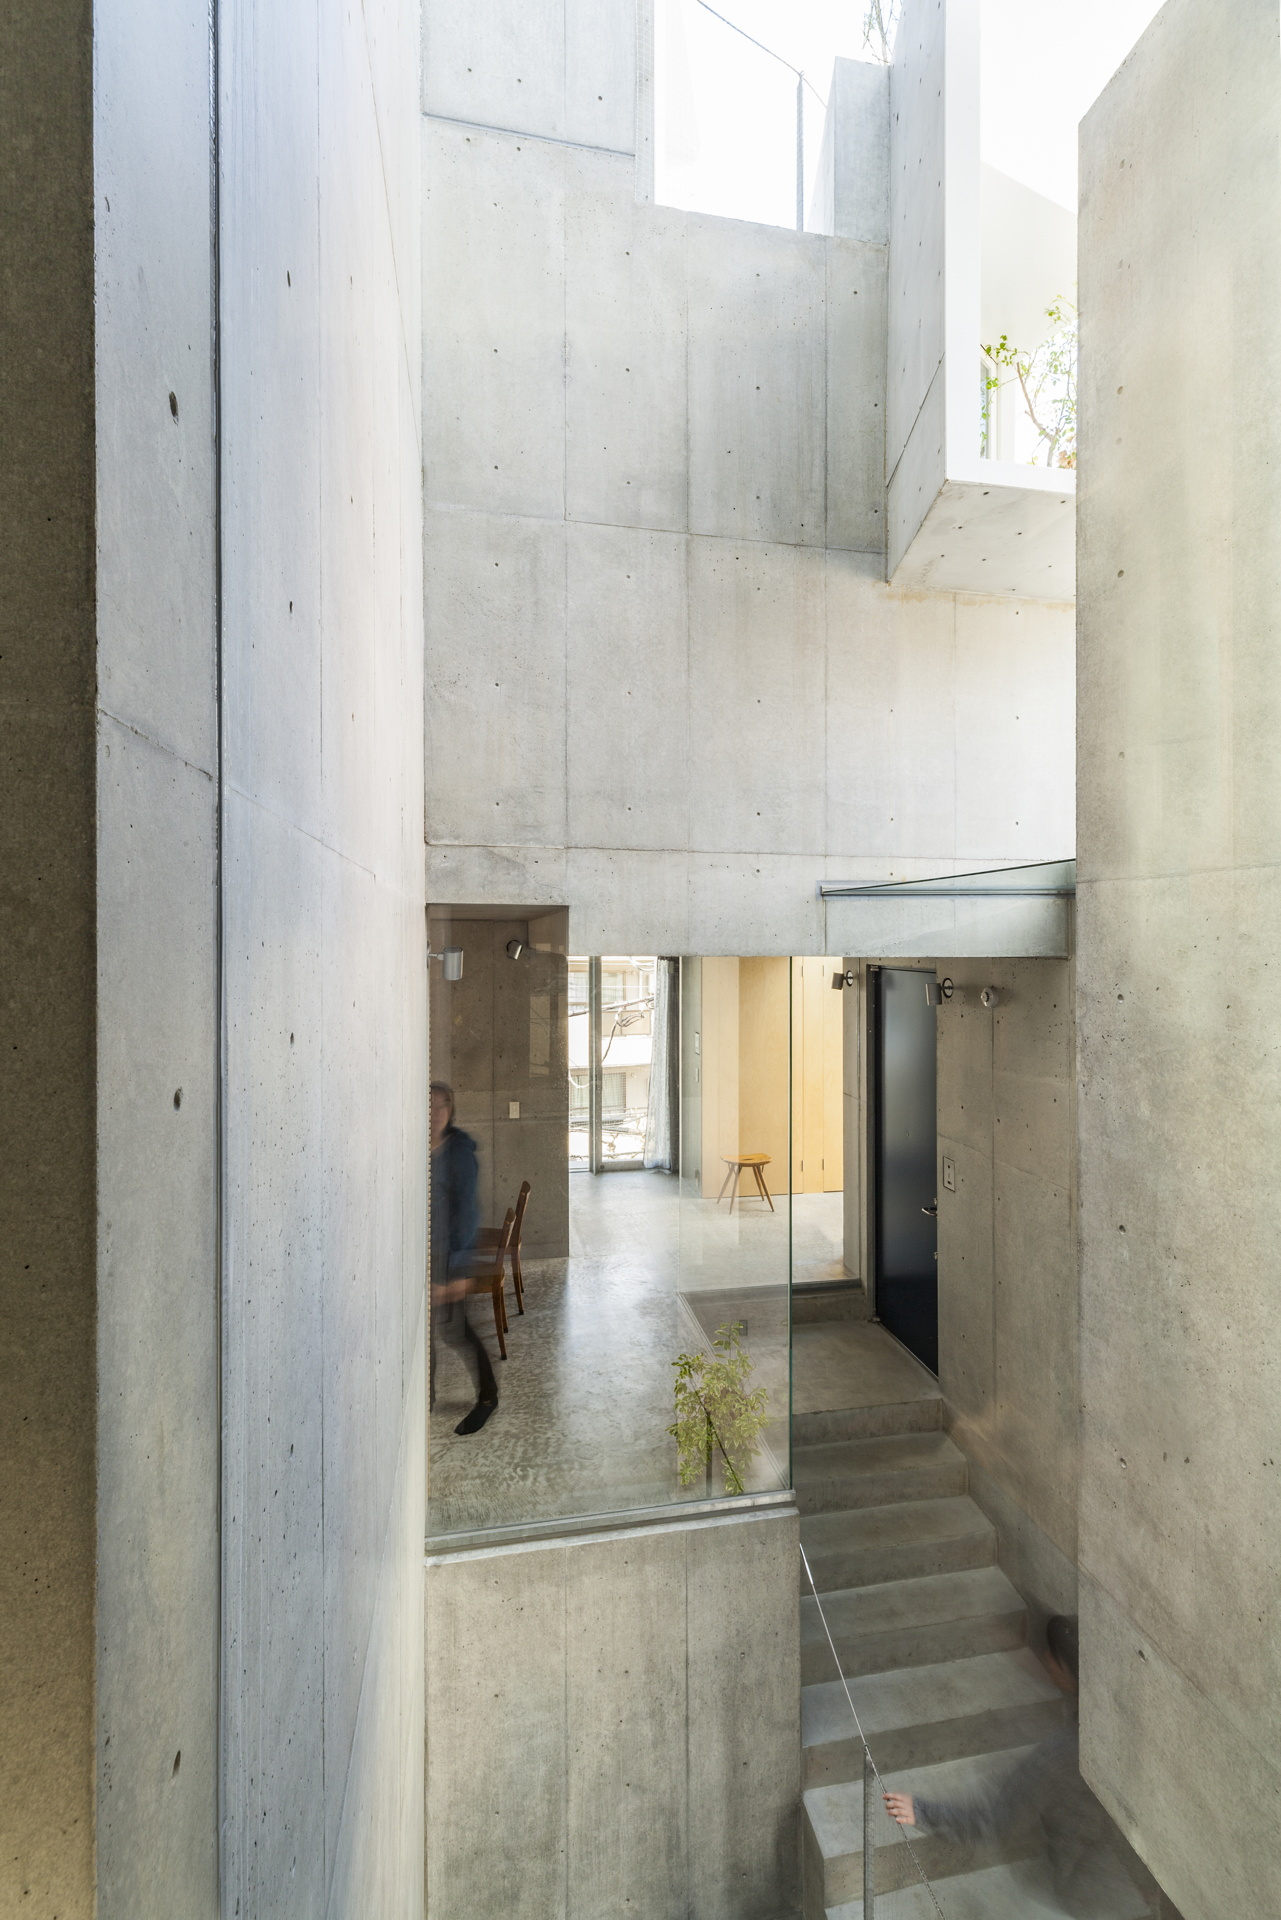 Akihisa Hirata: Tree-ness House, a house and art gallery in Tokyo